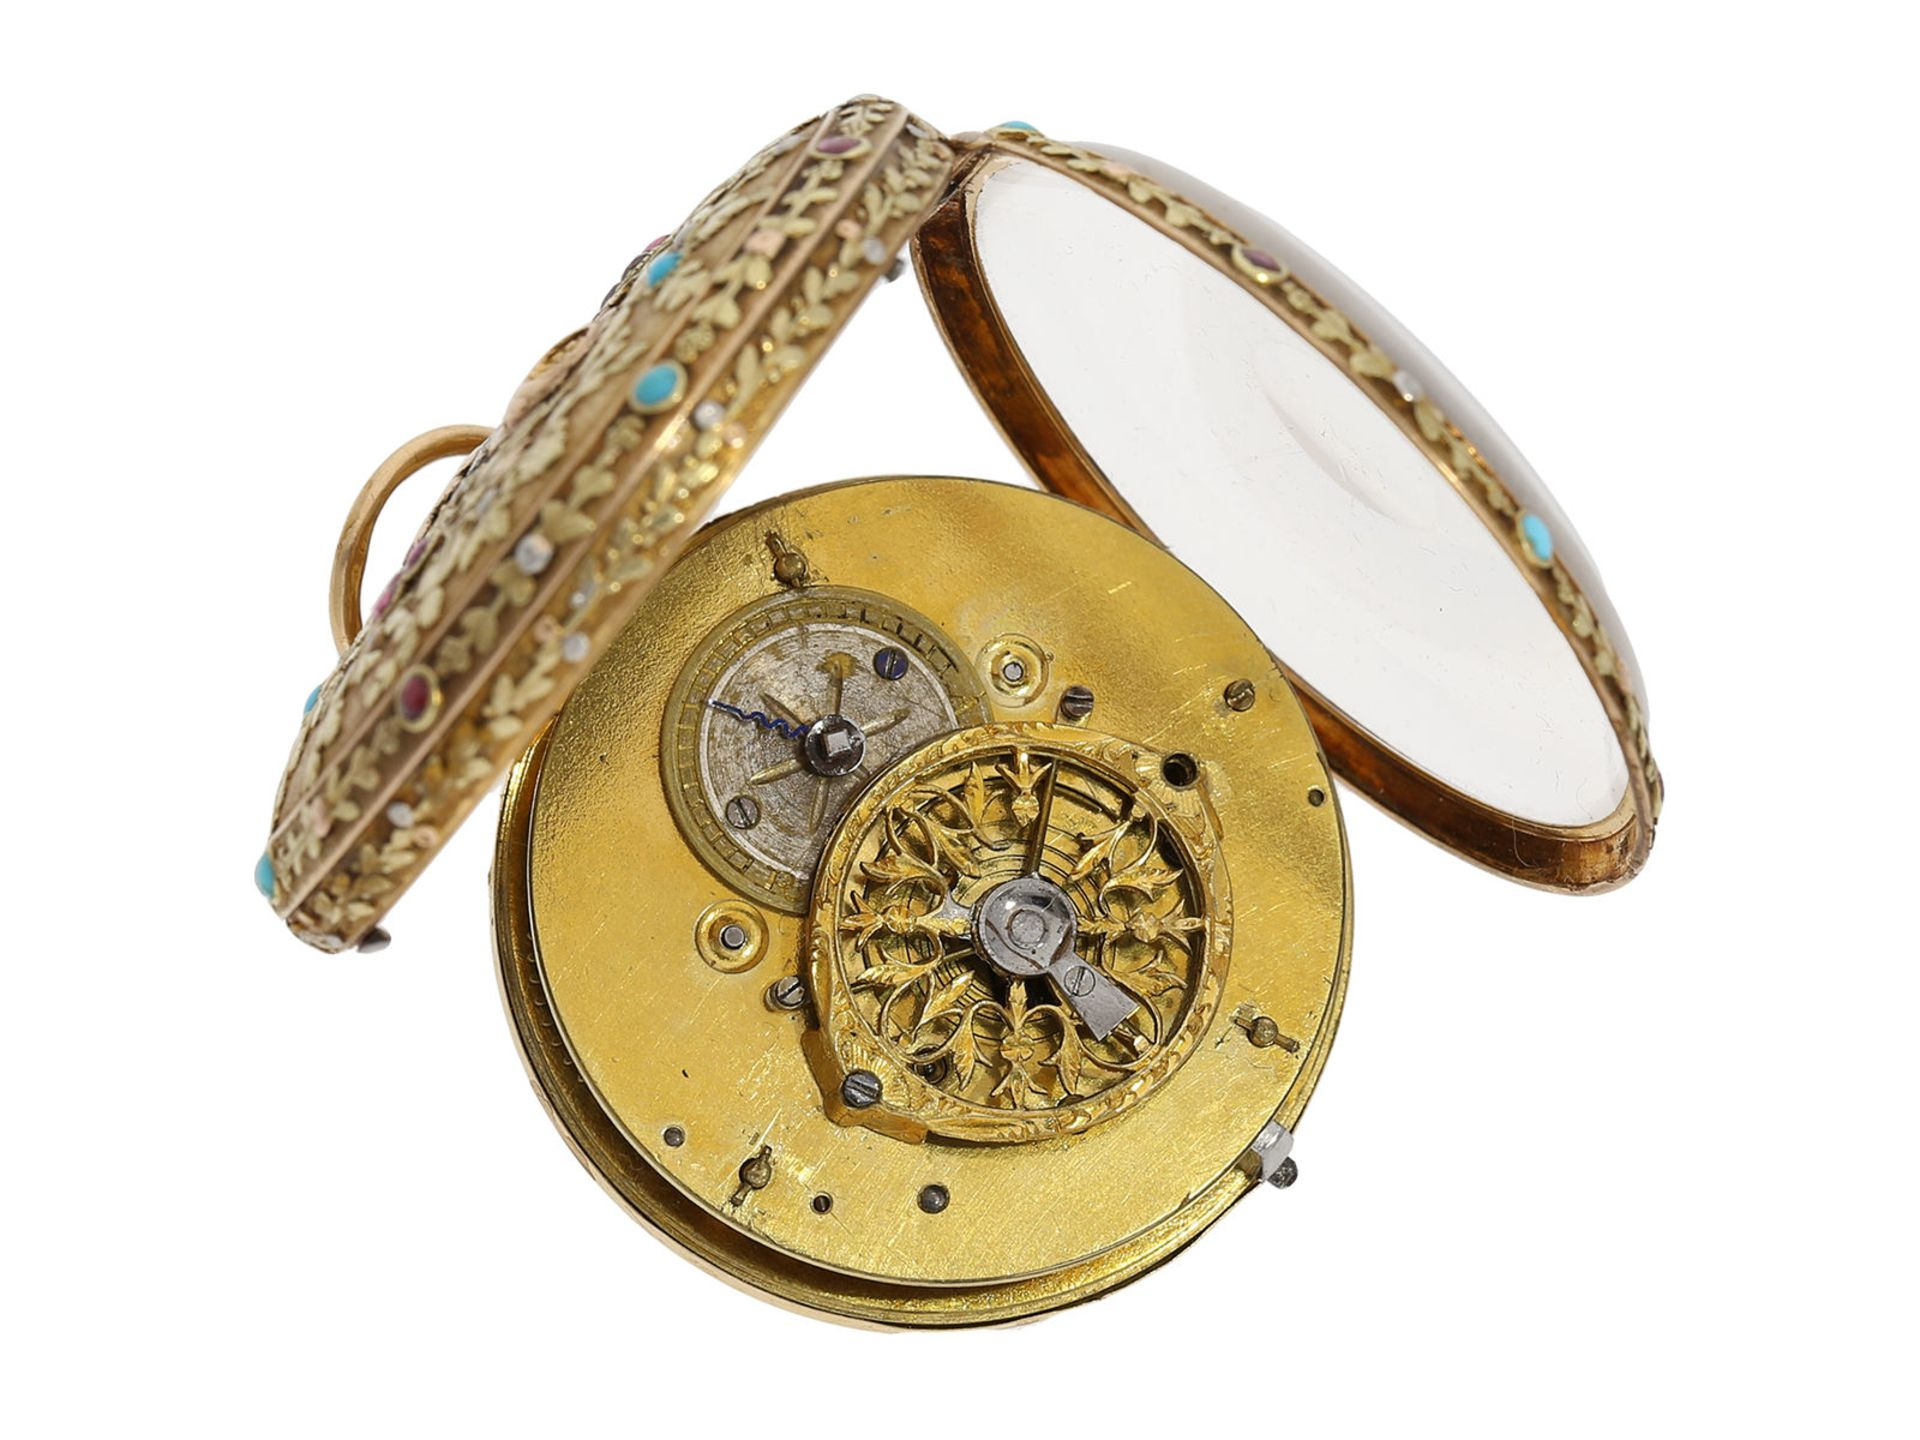 Pocket watch: museum-like 18K 4-coloured verge watch with turquoise setting and corresponding - Bild 3 aus 7